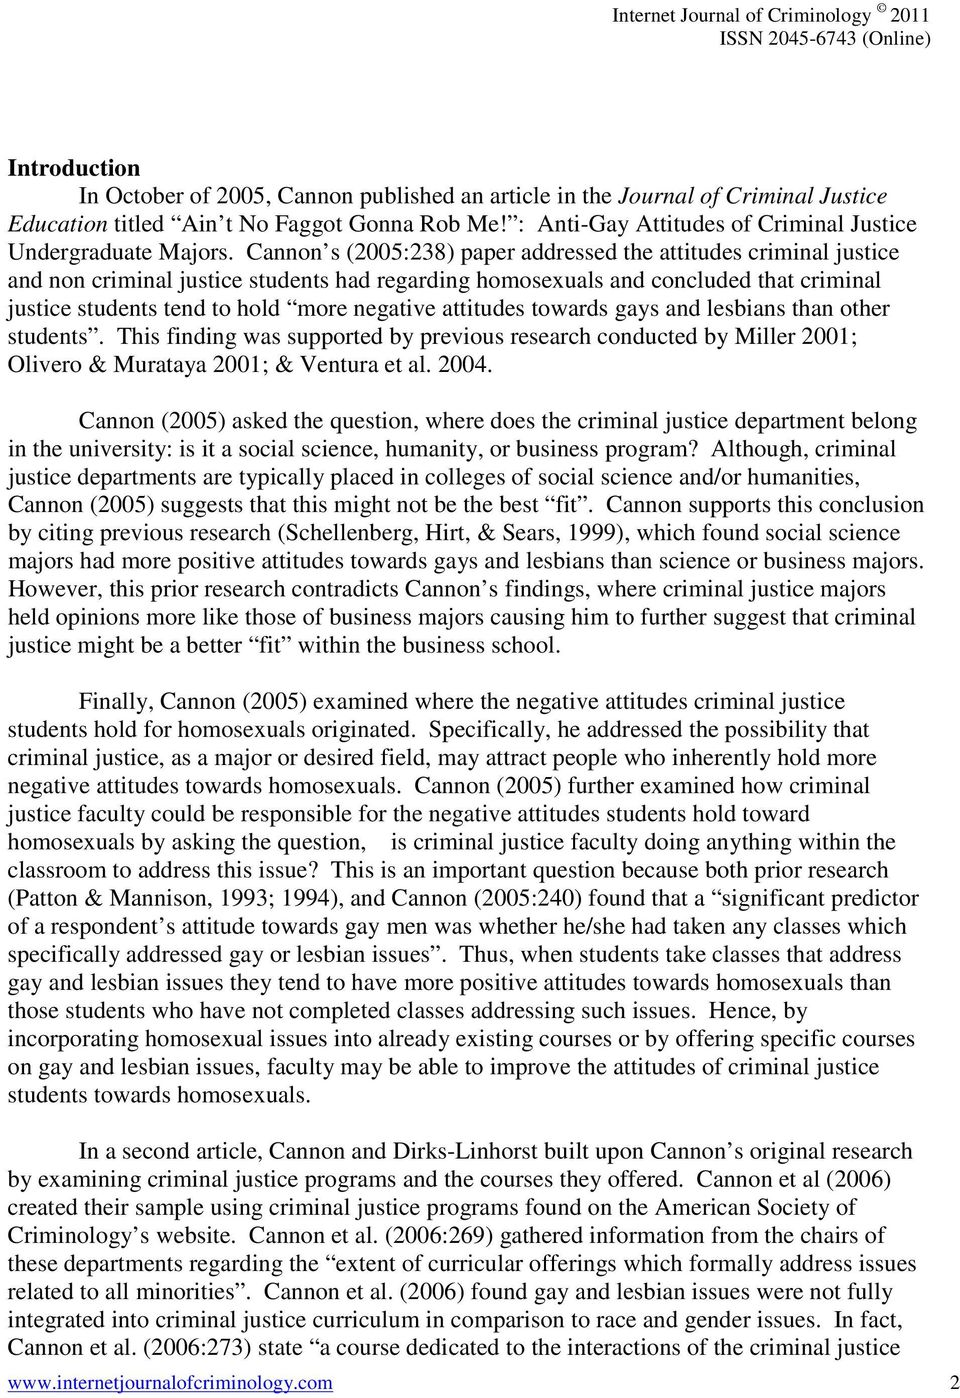 Cannon s (2005:238) paper addressed the attitudes criminal justice and non criminal justice students had regarding homosexuals and concluded that criminal justice students tend to hold more negative